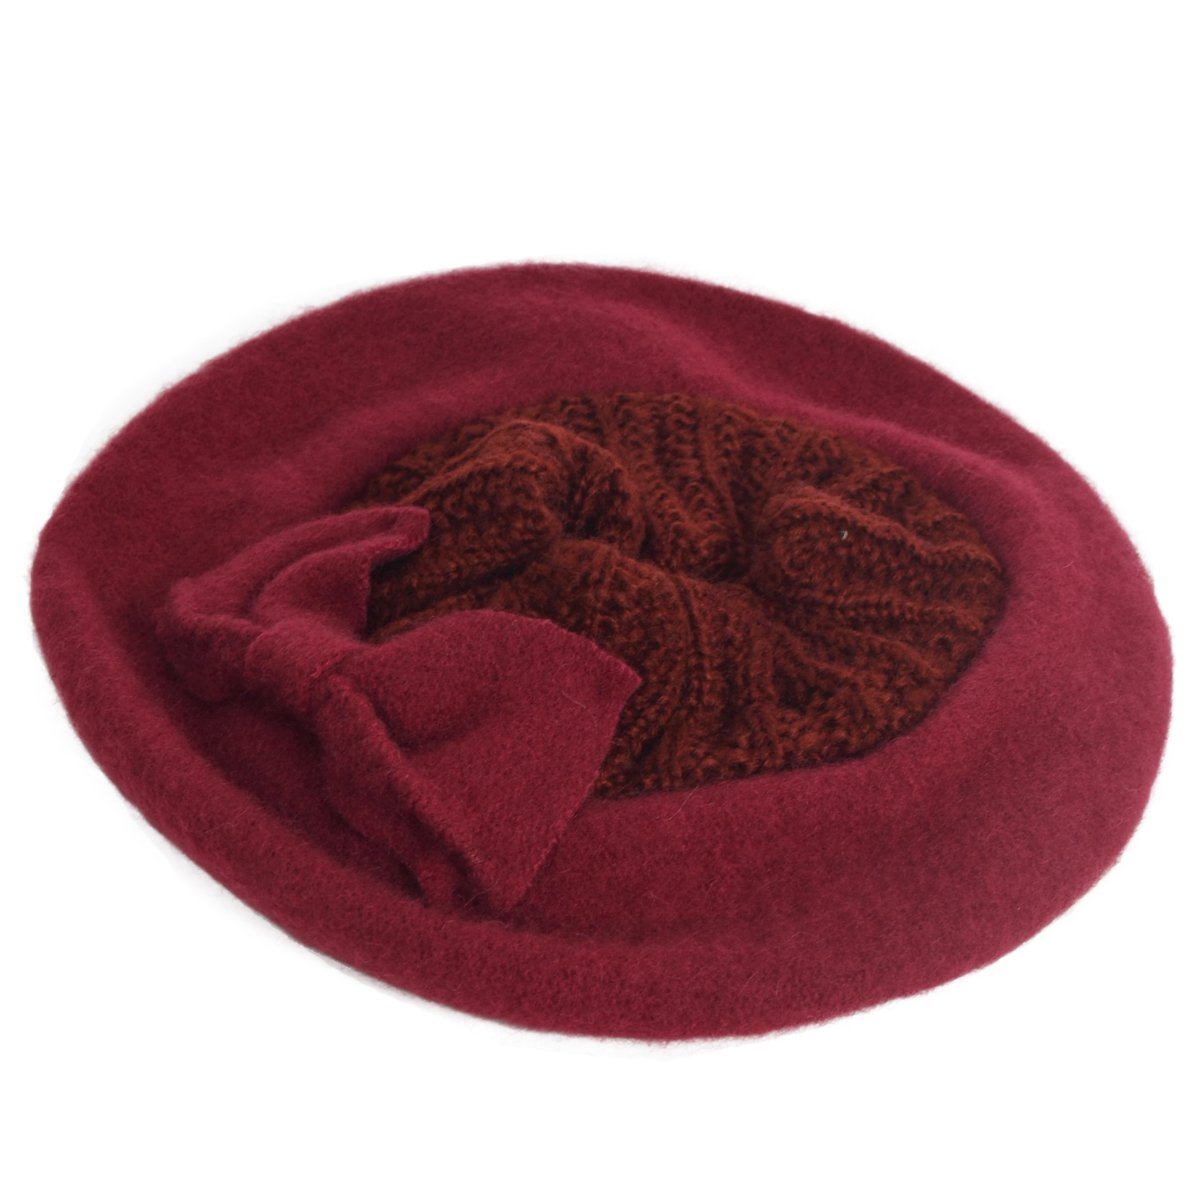 HISSHE Lady French Beret 100% Wool Beret Chic Beanie Winter Hat HY023 (Knit -Burgundy) 0d28fc6345b3